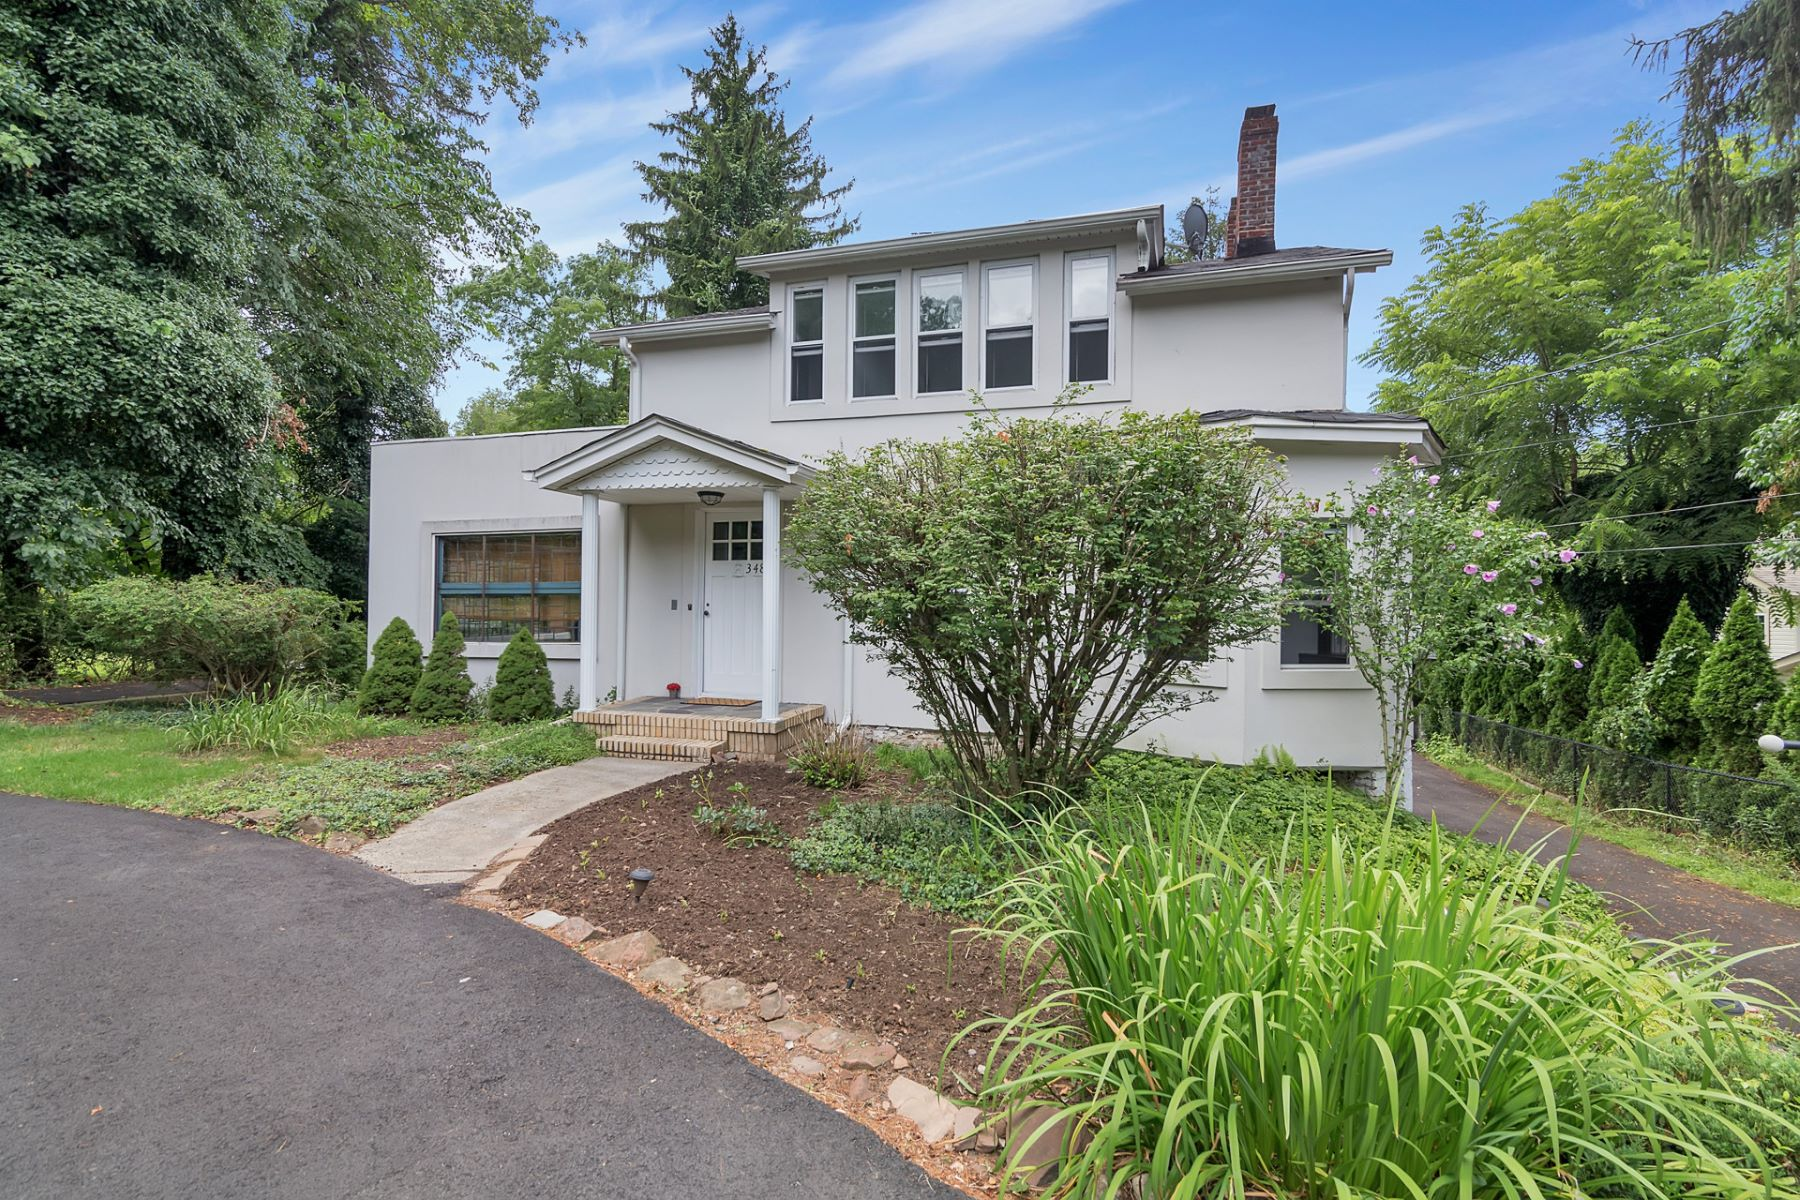 Multi-Family Home for Rent at Two Family Rental 348 Schraalenburgh Rd. Bottom, Closter, New Jersey 07624 United States